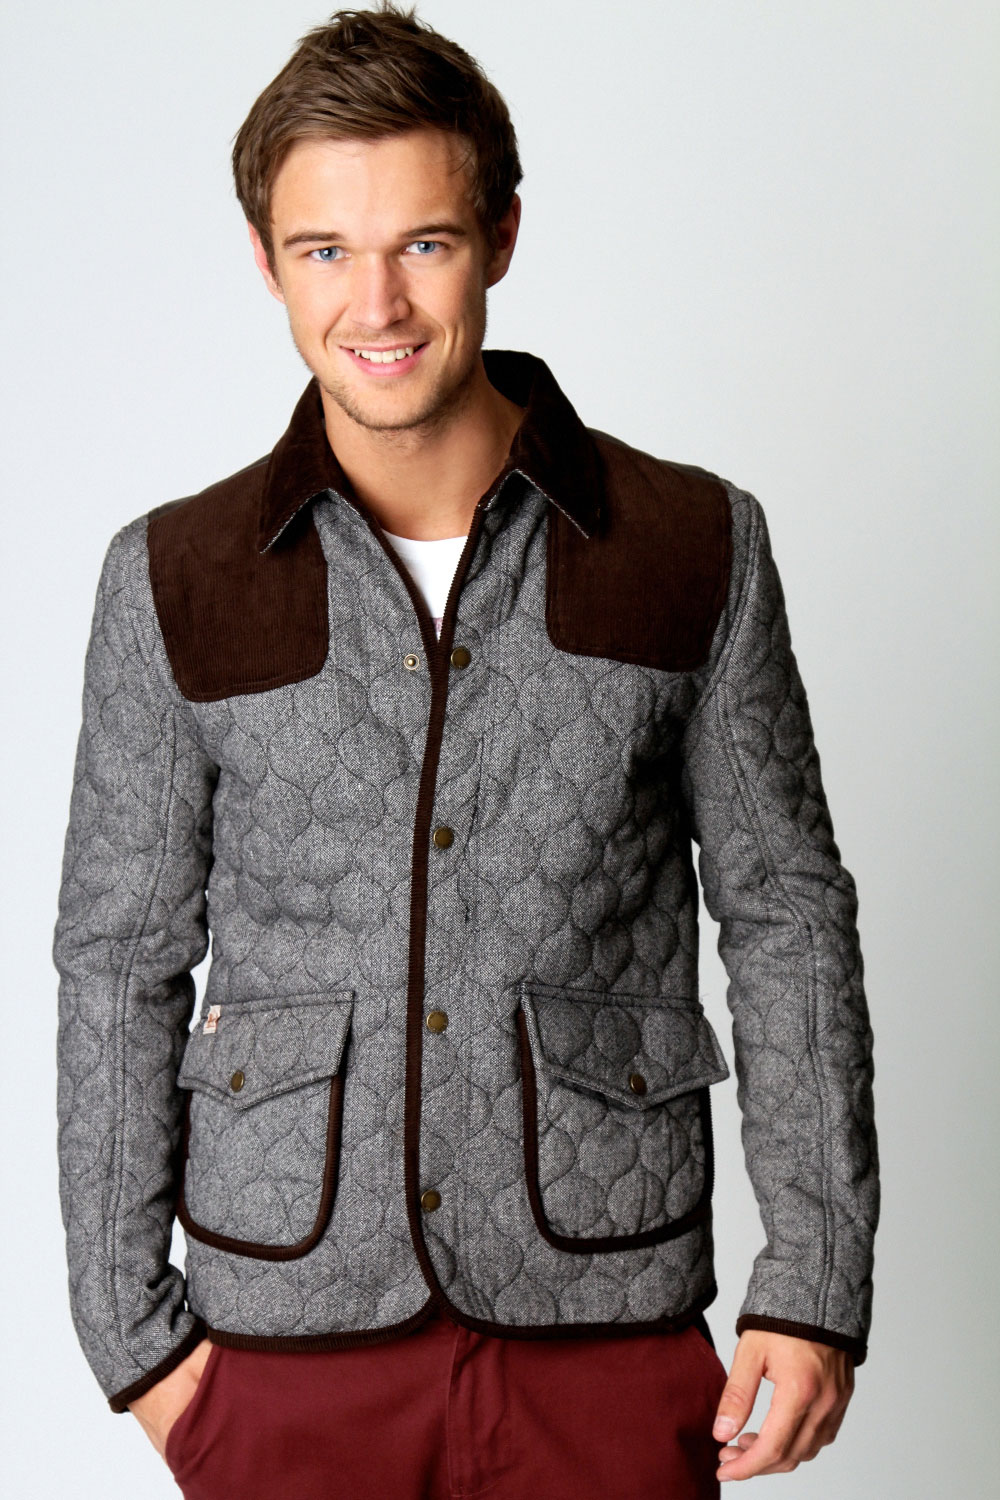 The inside lining adds warmth but I much prefer the older quilted nylon lining as it slides over your shirt or sweater much more easily. Still, this vest is unmatched in value and function including the much more expensive high end clothing in the outdoor catalogs.